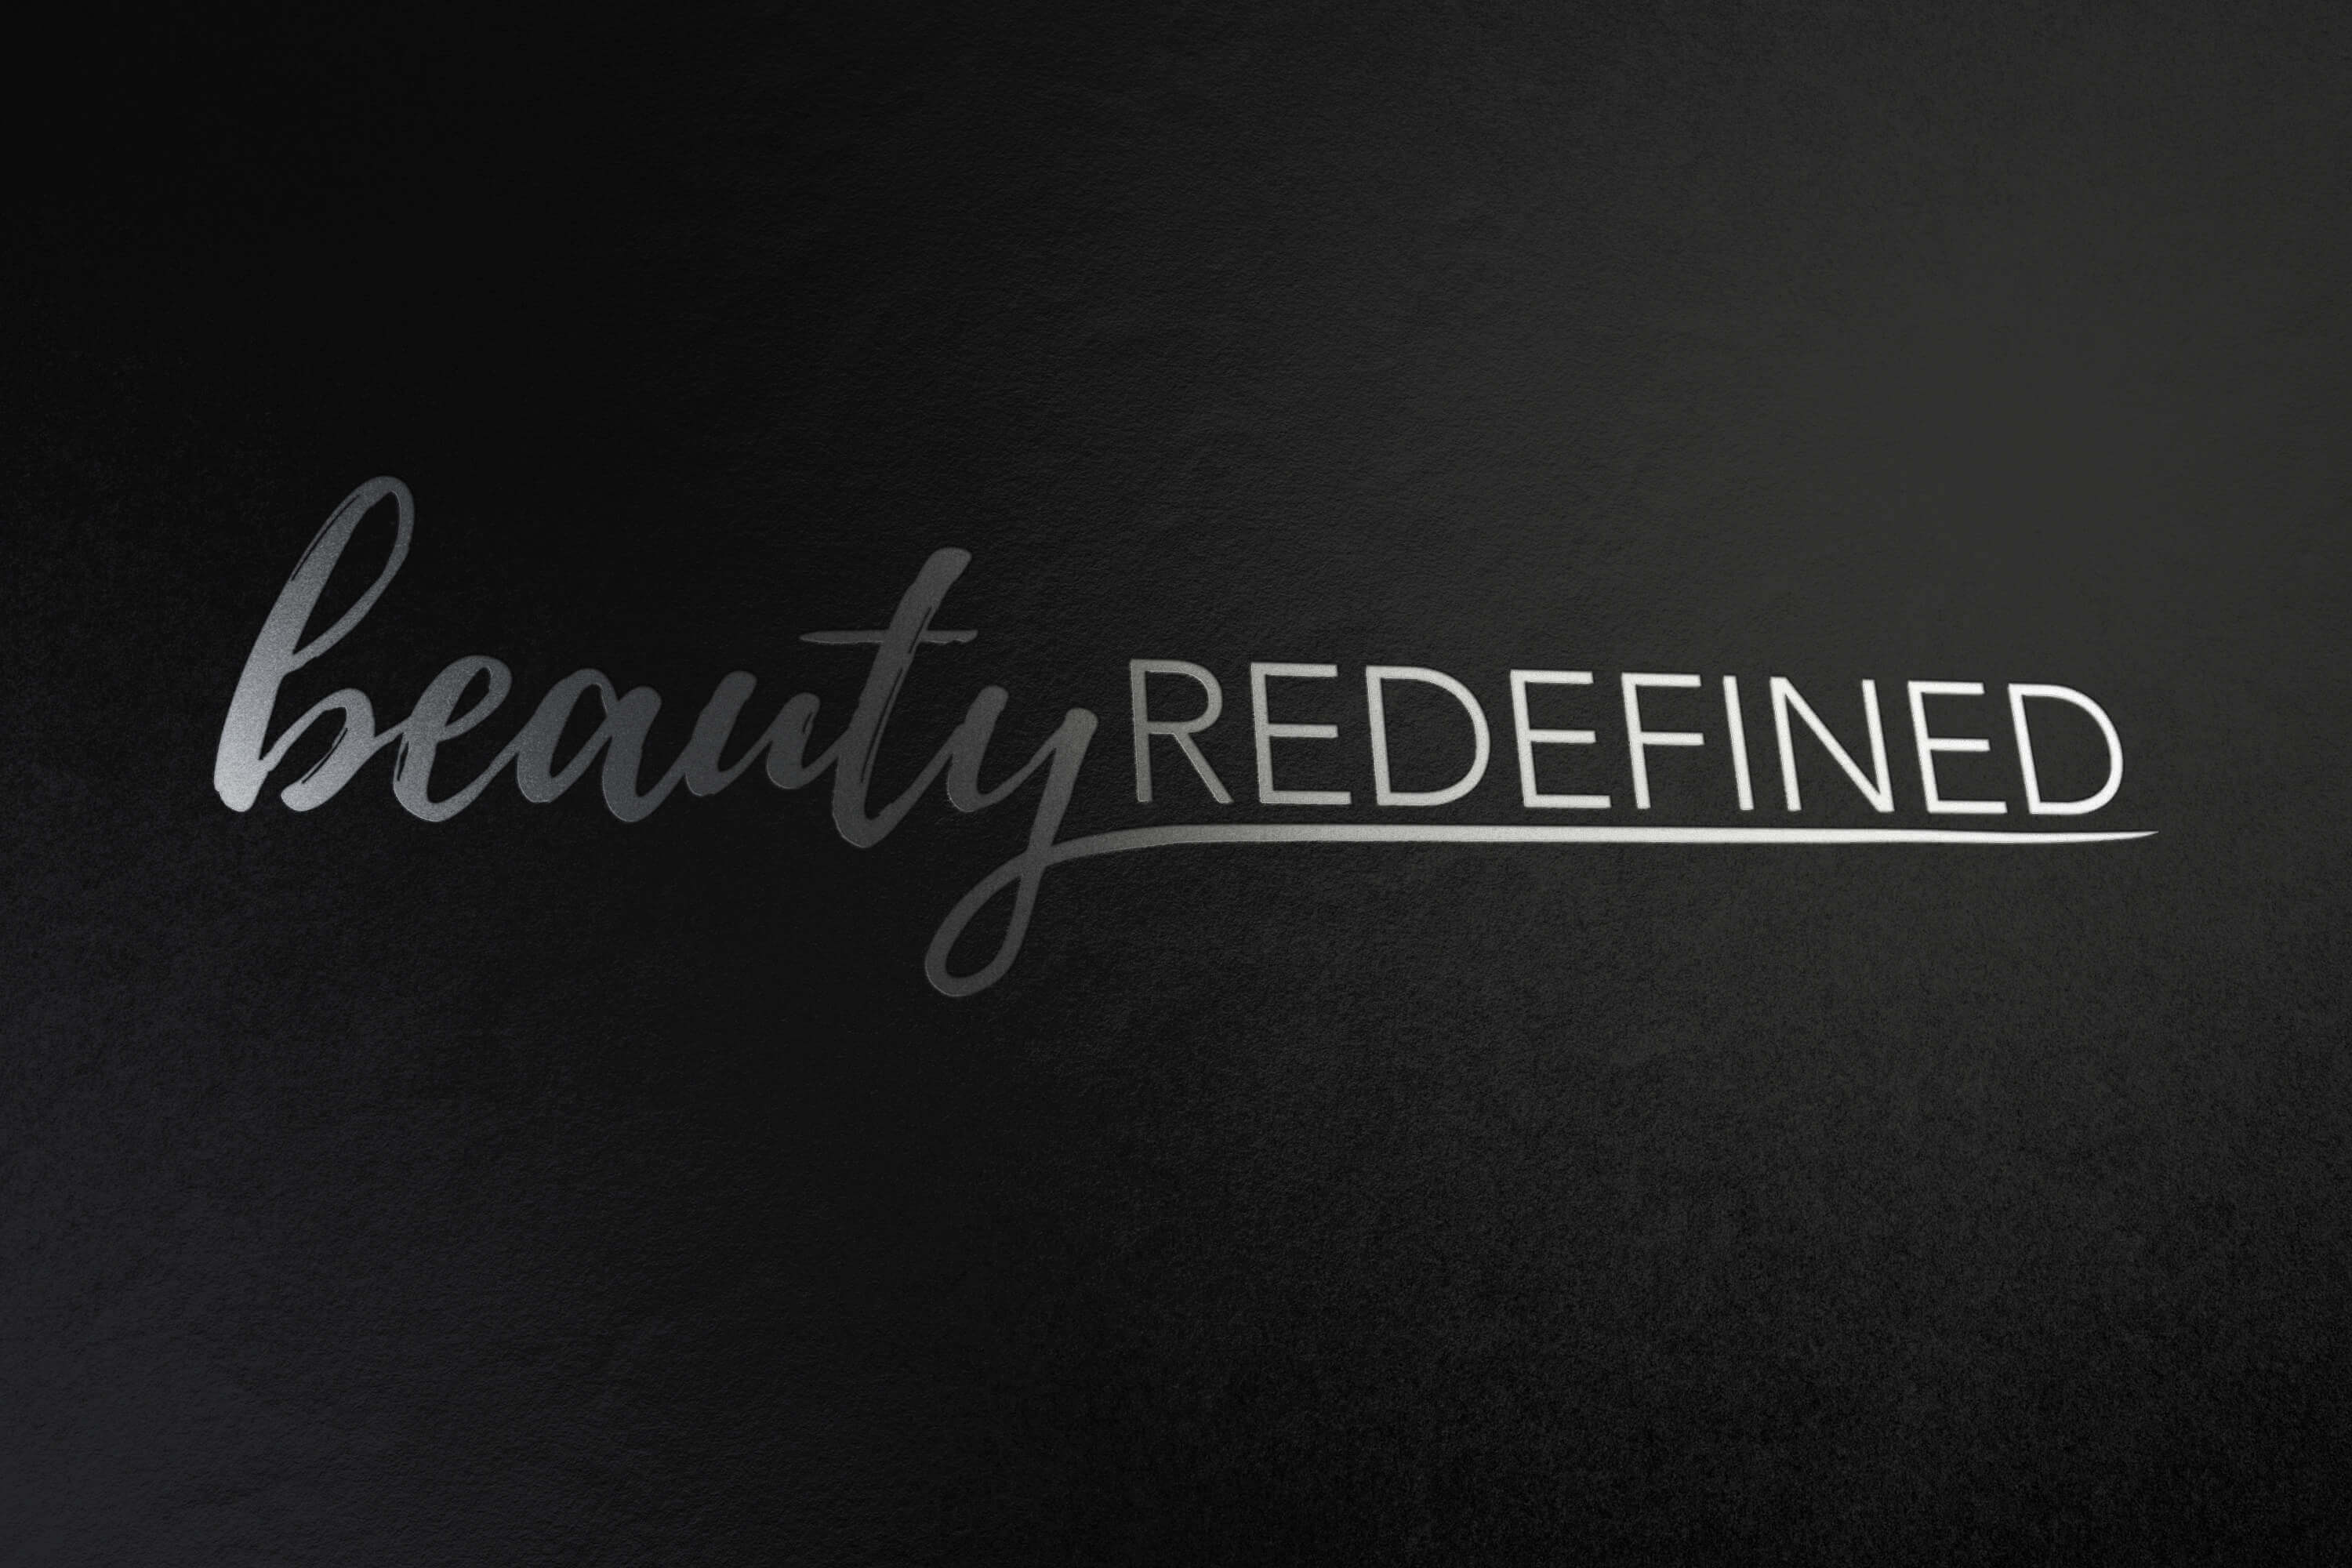 Beauty Redefined Logo Design Project